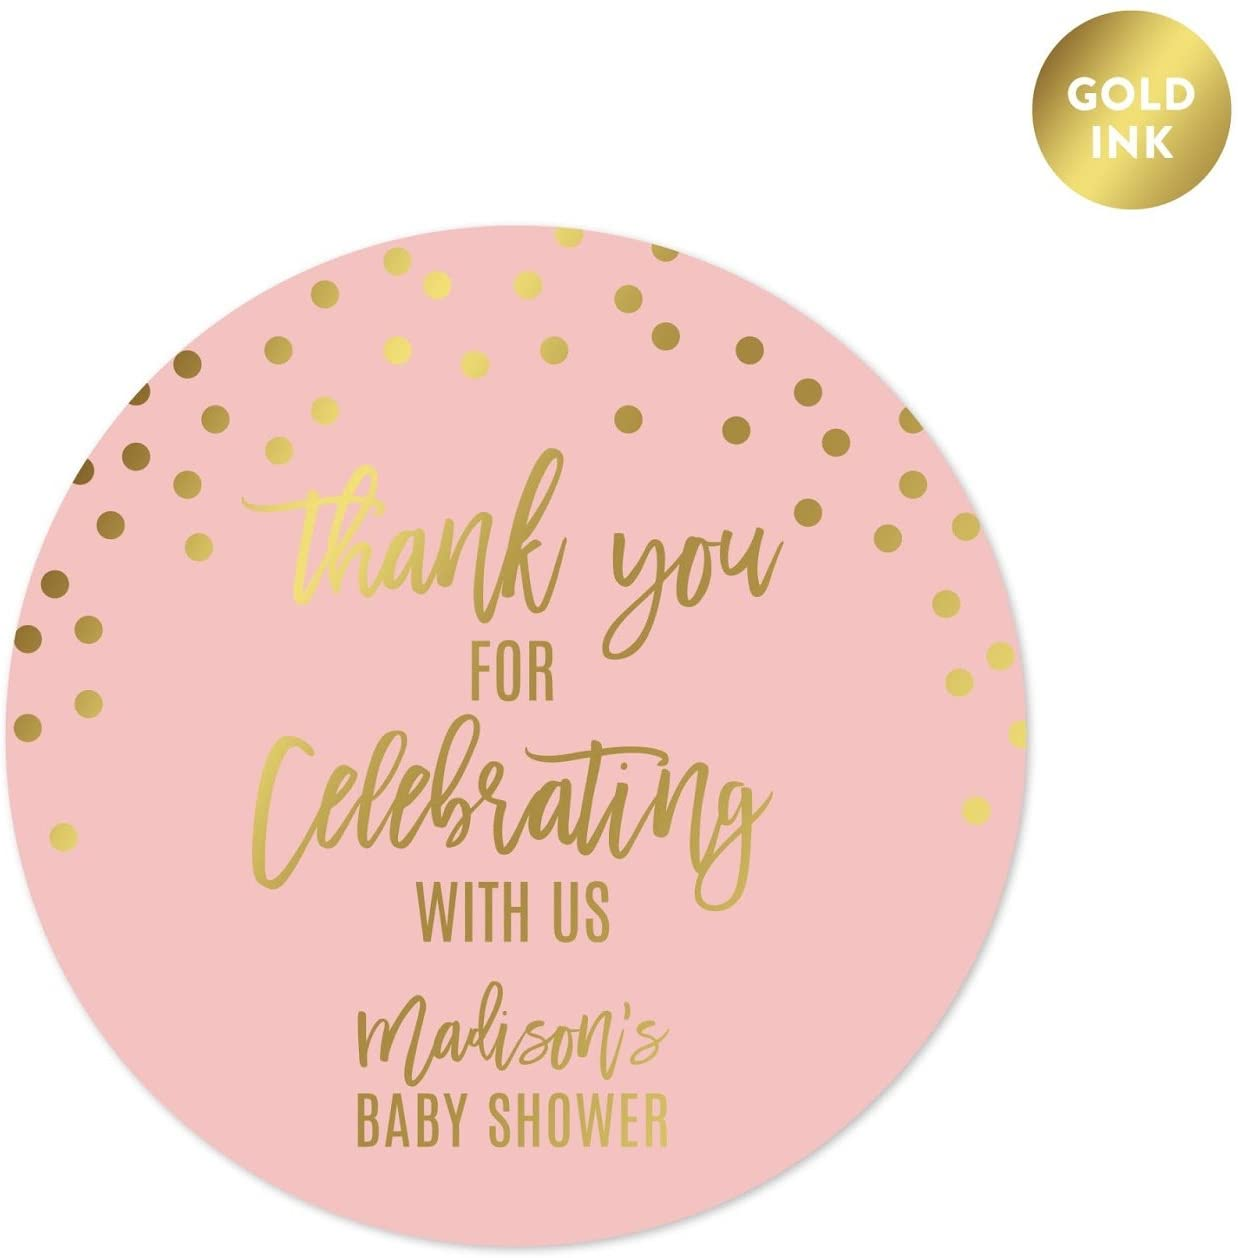 Andaz Press Blush Pink and Metallic Gold Confetti Polka Dots Baby Shower Party Collection, Personalized Round Circle Label Stickers, Thank You for Celebrating with US, 40-Pack, Custom